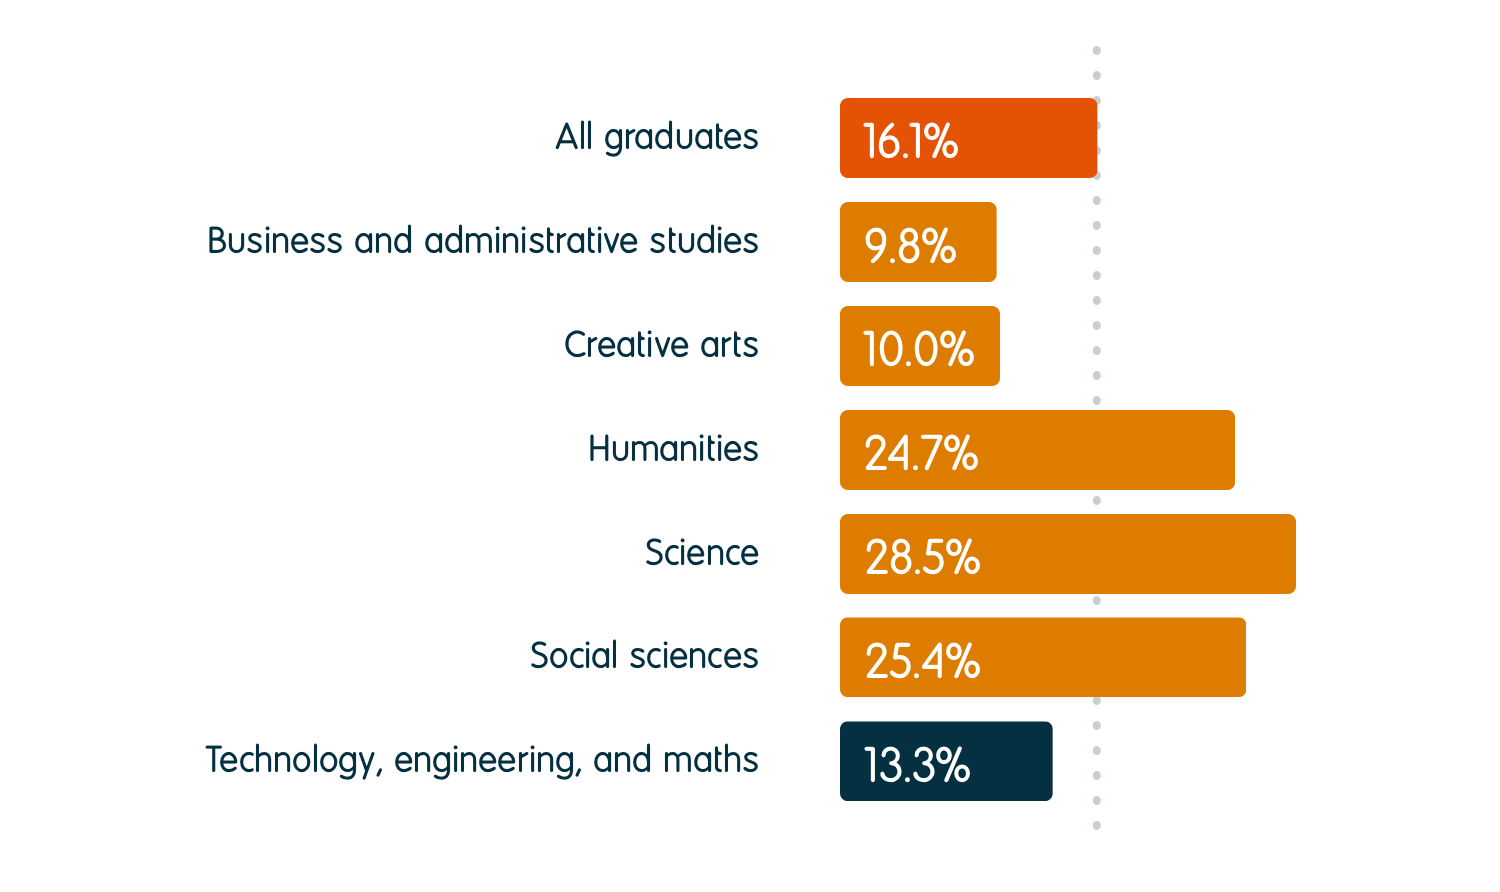 13.3% of technology, engineering, and maths graduates were in further study six months after graduation, compared to an average of 16.1% for all graduates. For other subject groups, the percentage going into further study was 9.8% for business and administrative studies, 10.0% for creative arts, 24.7% for humanities, 28.5% for science, and 25.4% for social sciences.